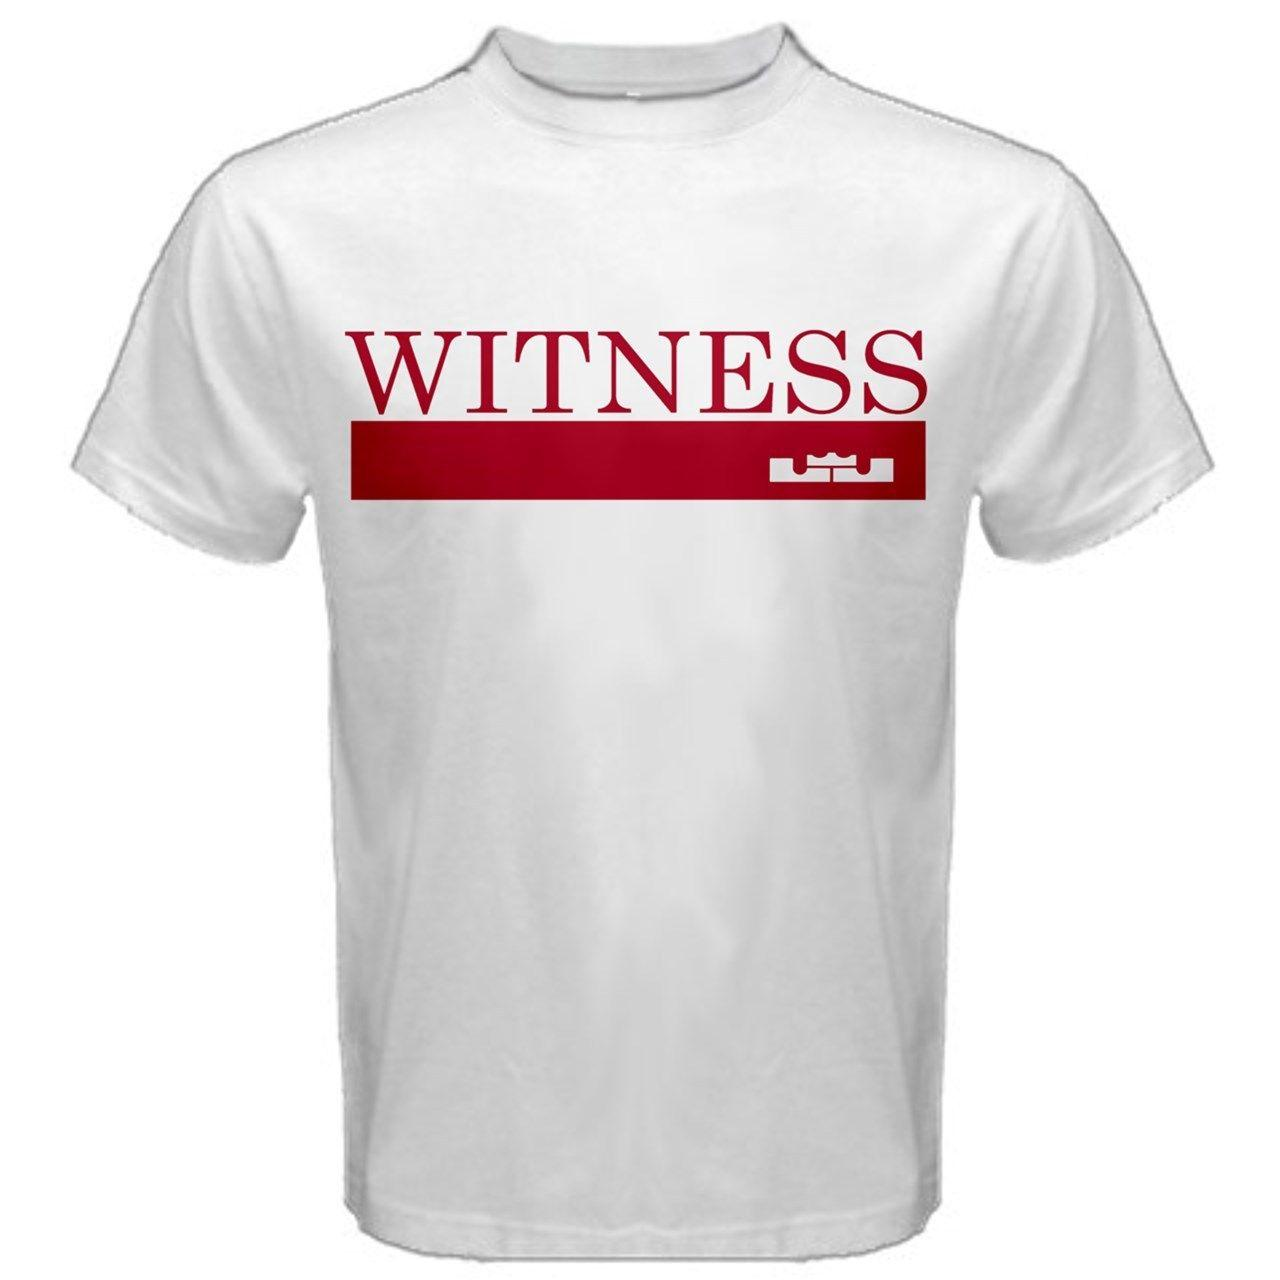 buy online e9236 9bf82 Lebron James King Crown Witness Cavs 23 New T-SHIRT TEES LJ1